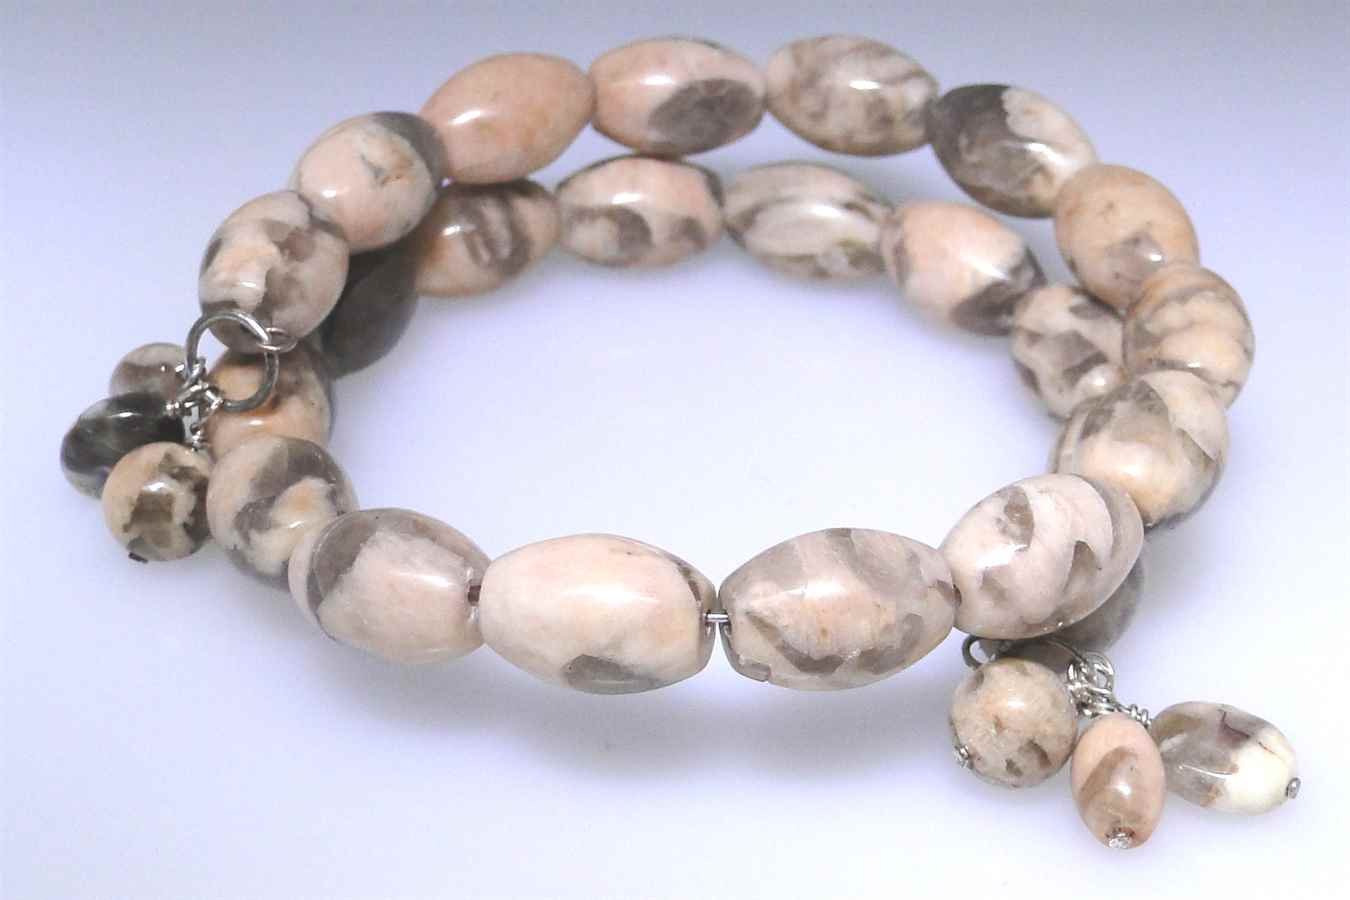 New Agate oval bead coil bracelet, nice color patterns